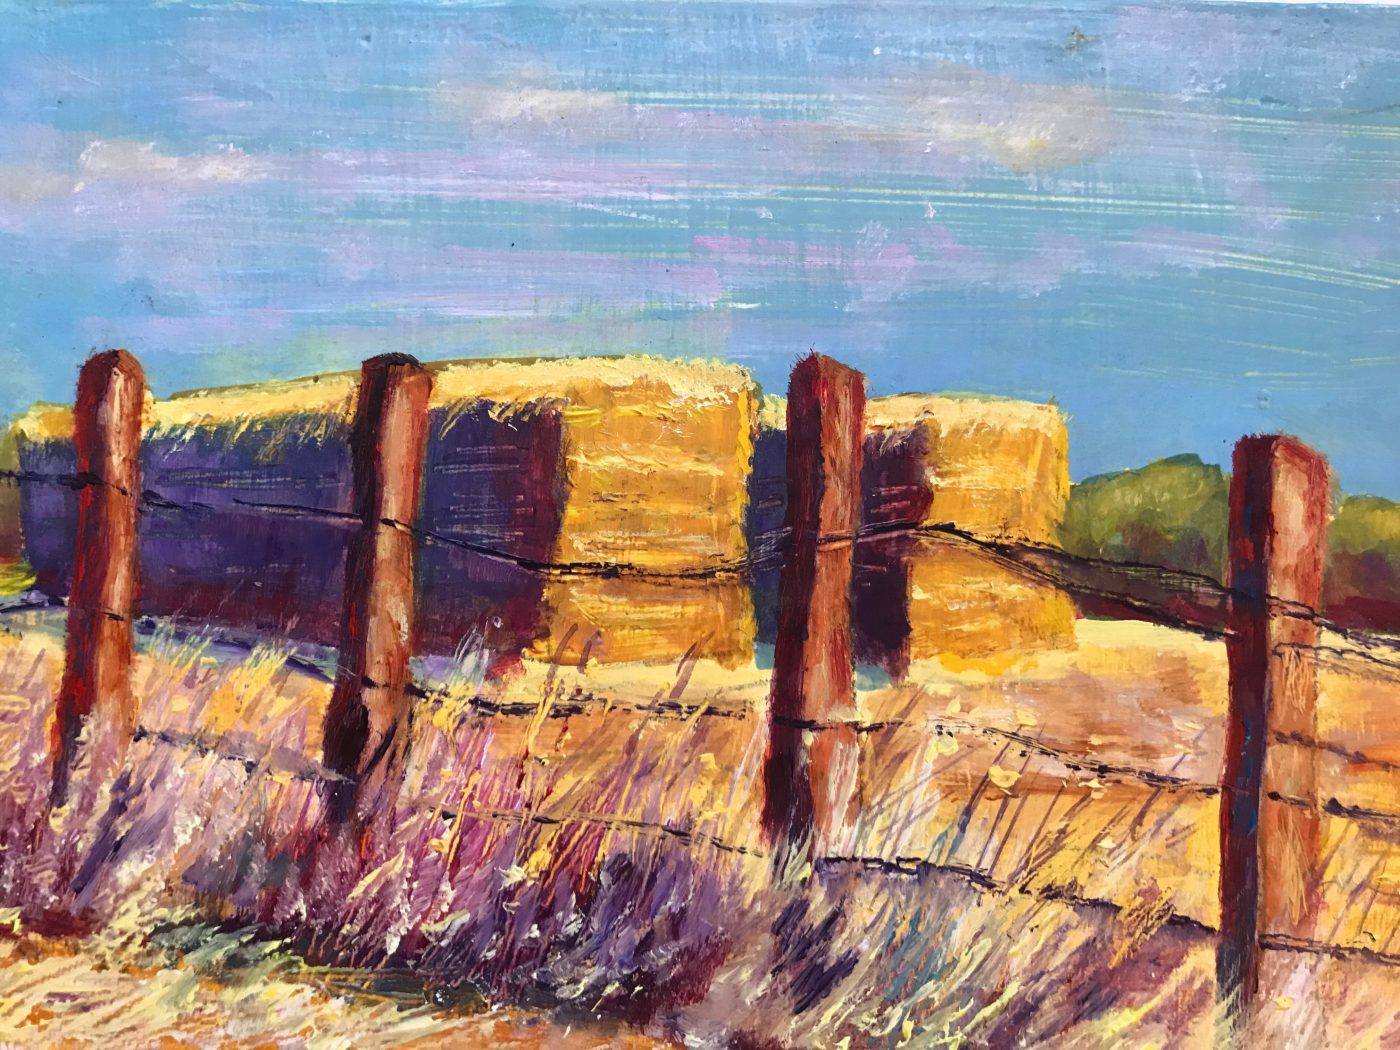 Kim Tennant Painting: Freeman Rd